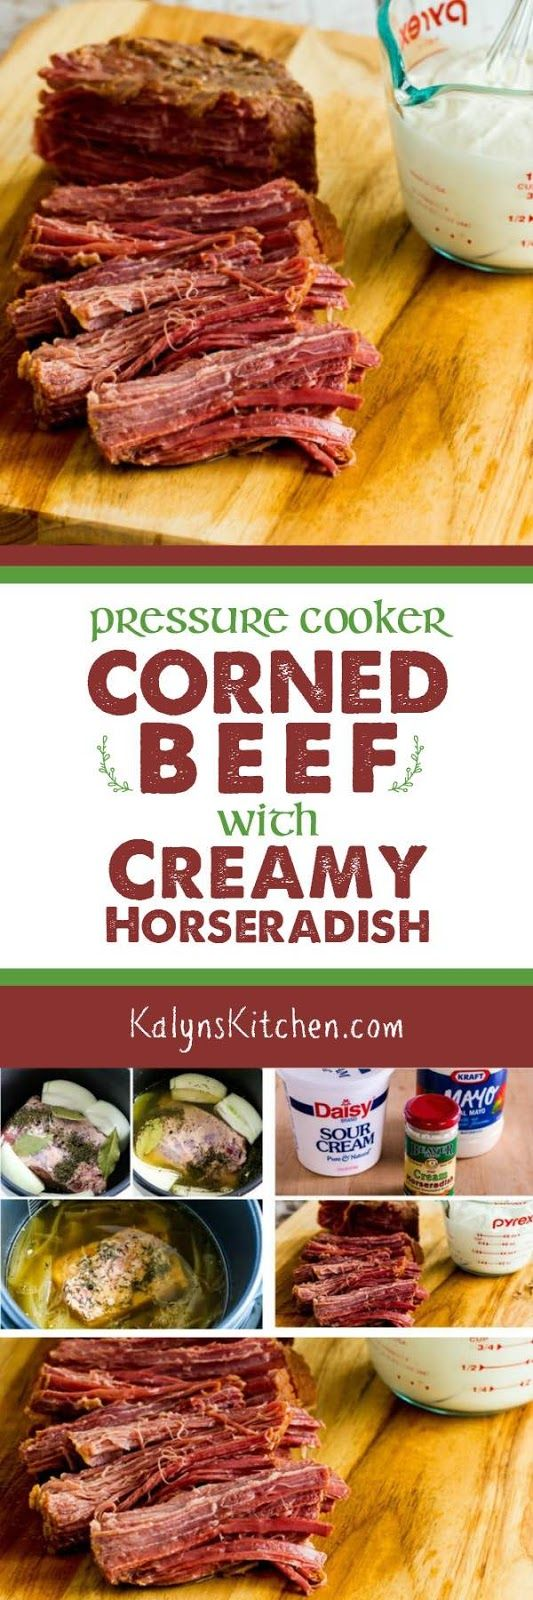 Pressure Cooker Corned Beef with Creamy Horseradish Sauce; use the Instant Pot or pressure cooker to make the most ultra-tender corned beef you've ever had and this recipe is low-carb, Keto, low-glycemic, gluten-free, and perfect for St. Patrick's Day (or any time you're craving corned beef)! [found on KalynsKitchen.com]